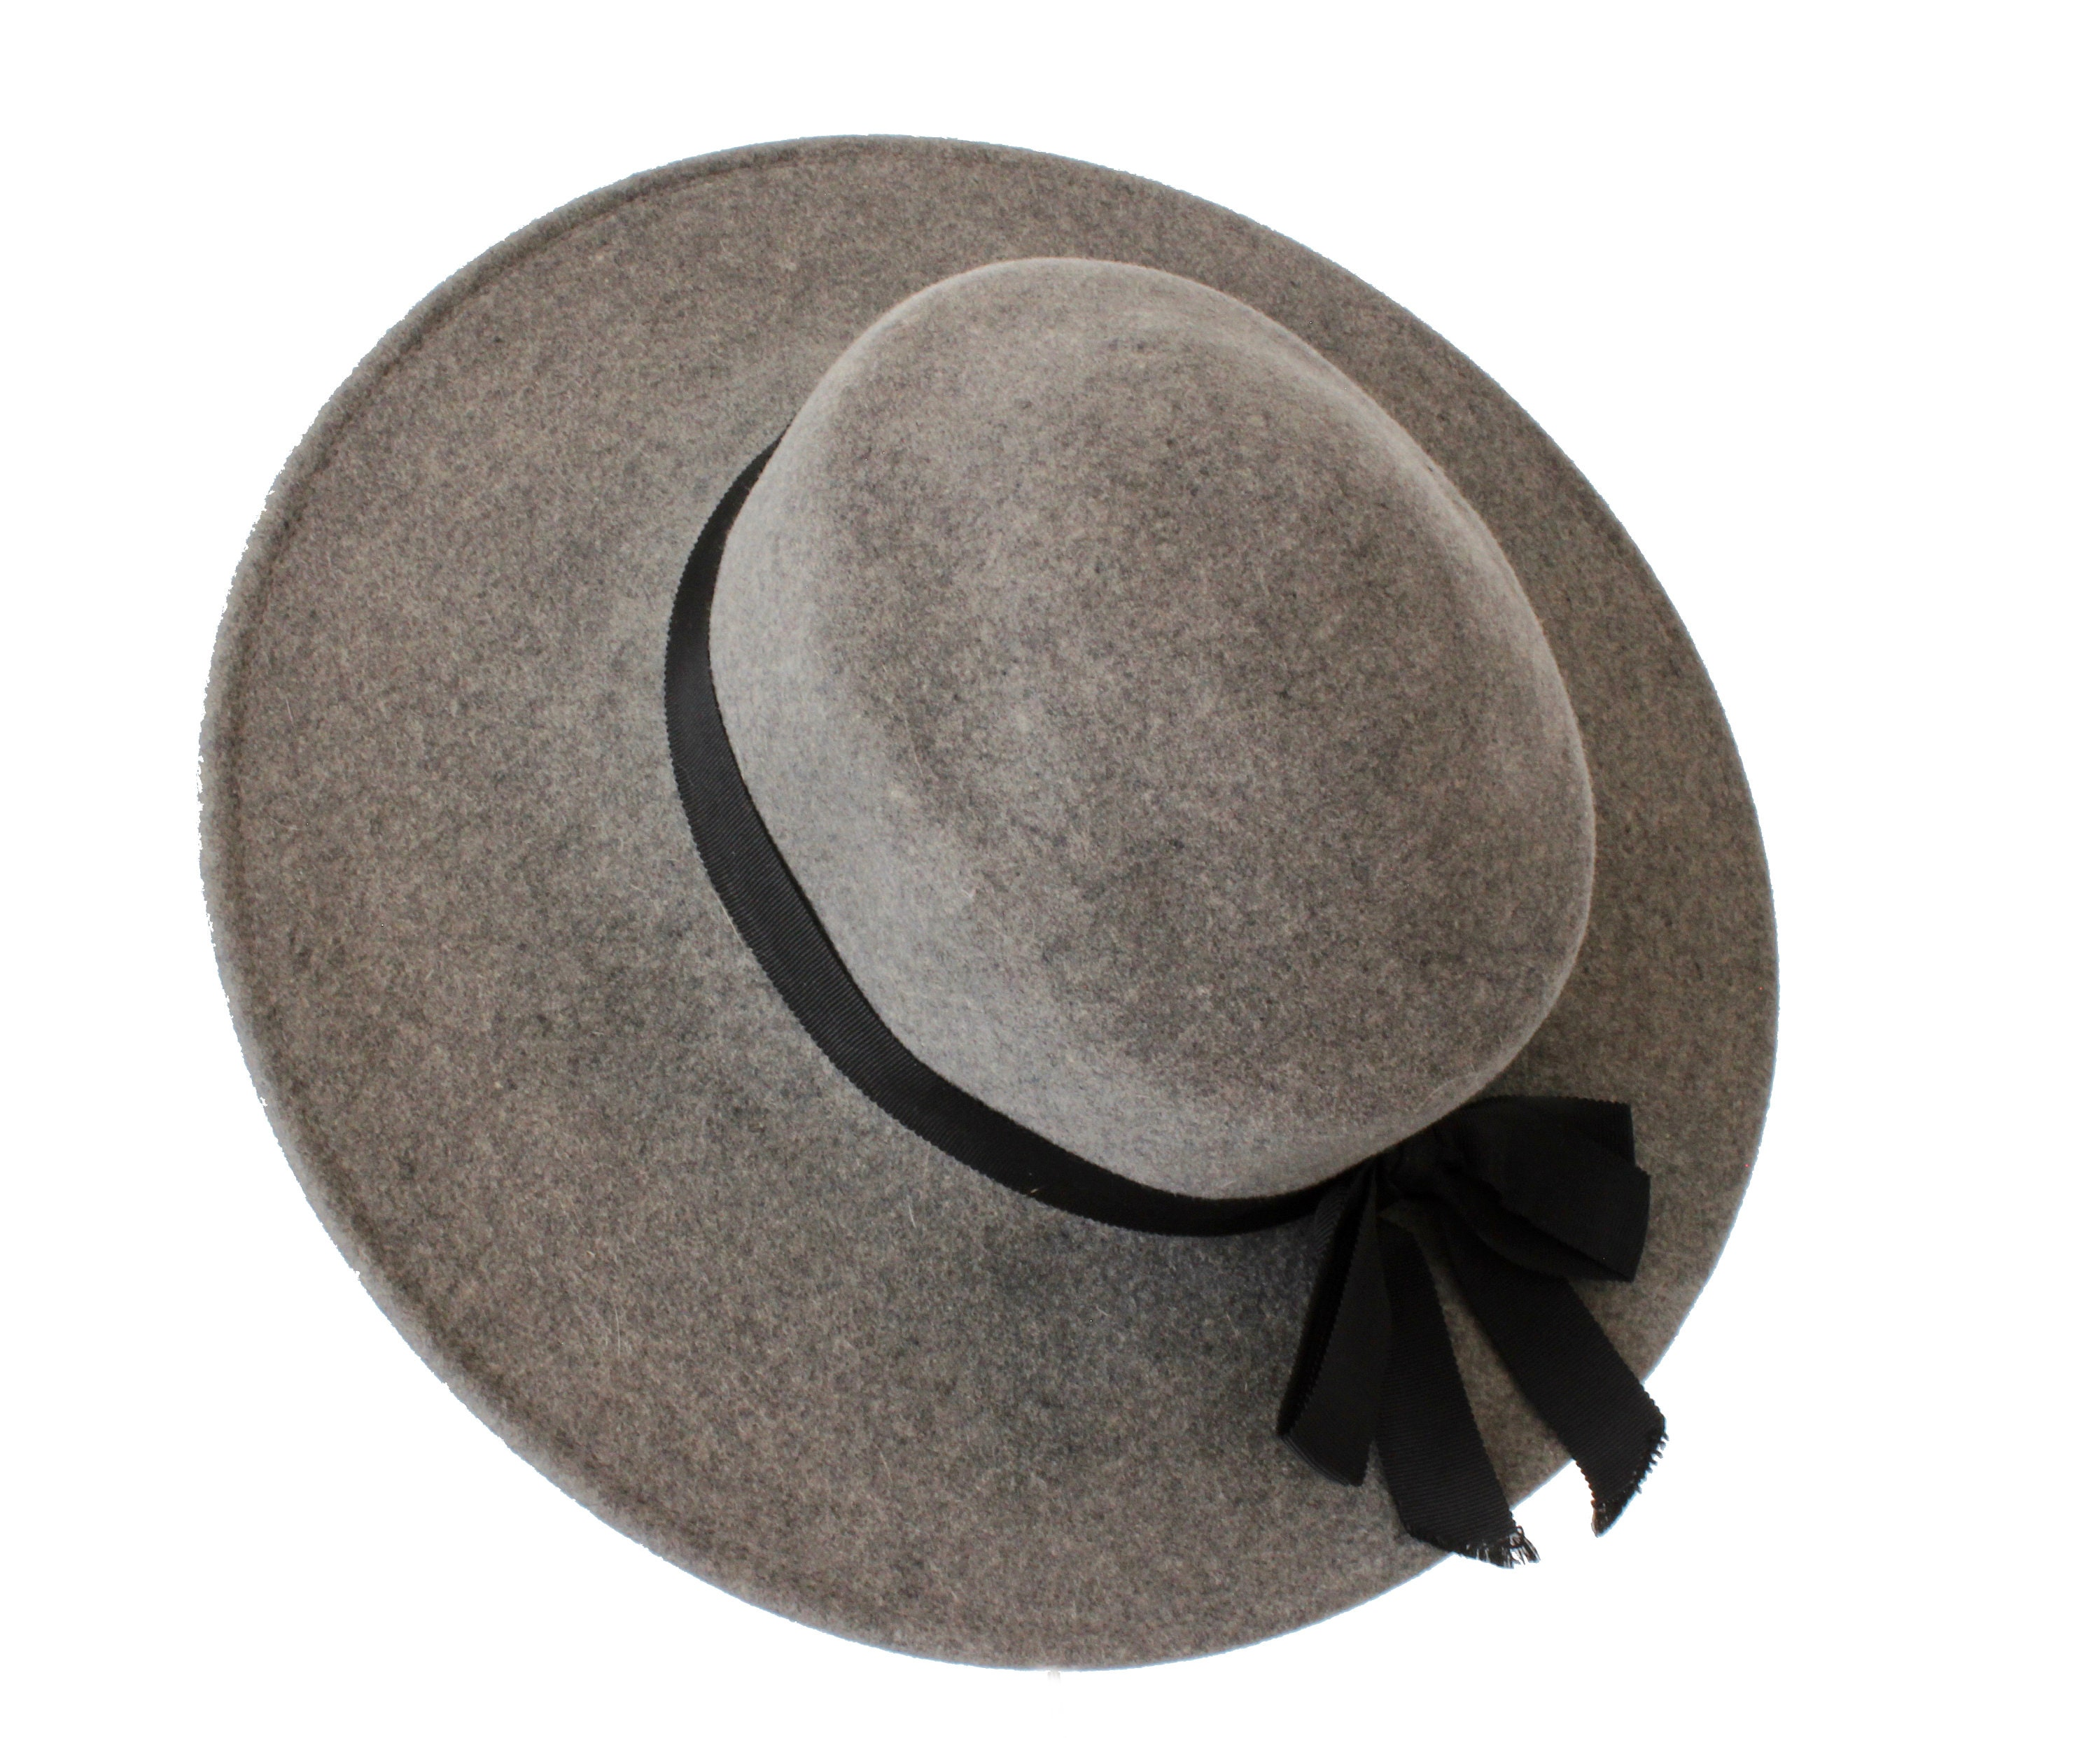 9e4ad9abc90 70s Yves Saint Laurent Wide Brim Hat Gray Wool by Bollman Hat